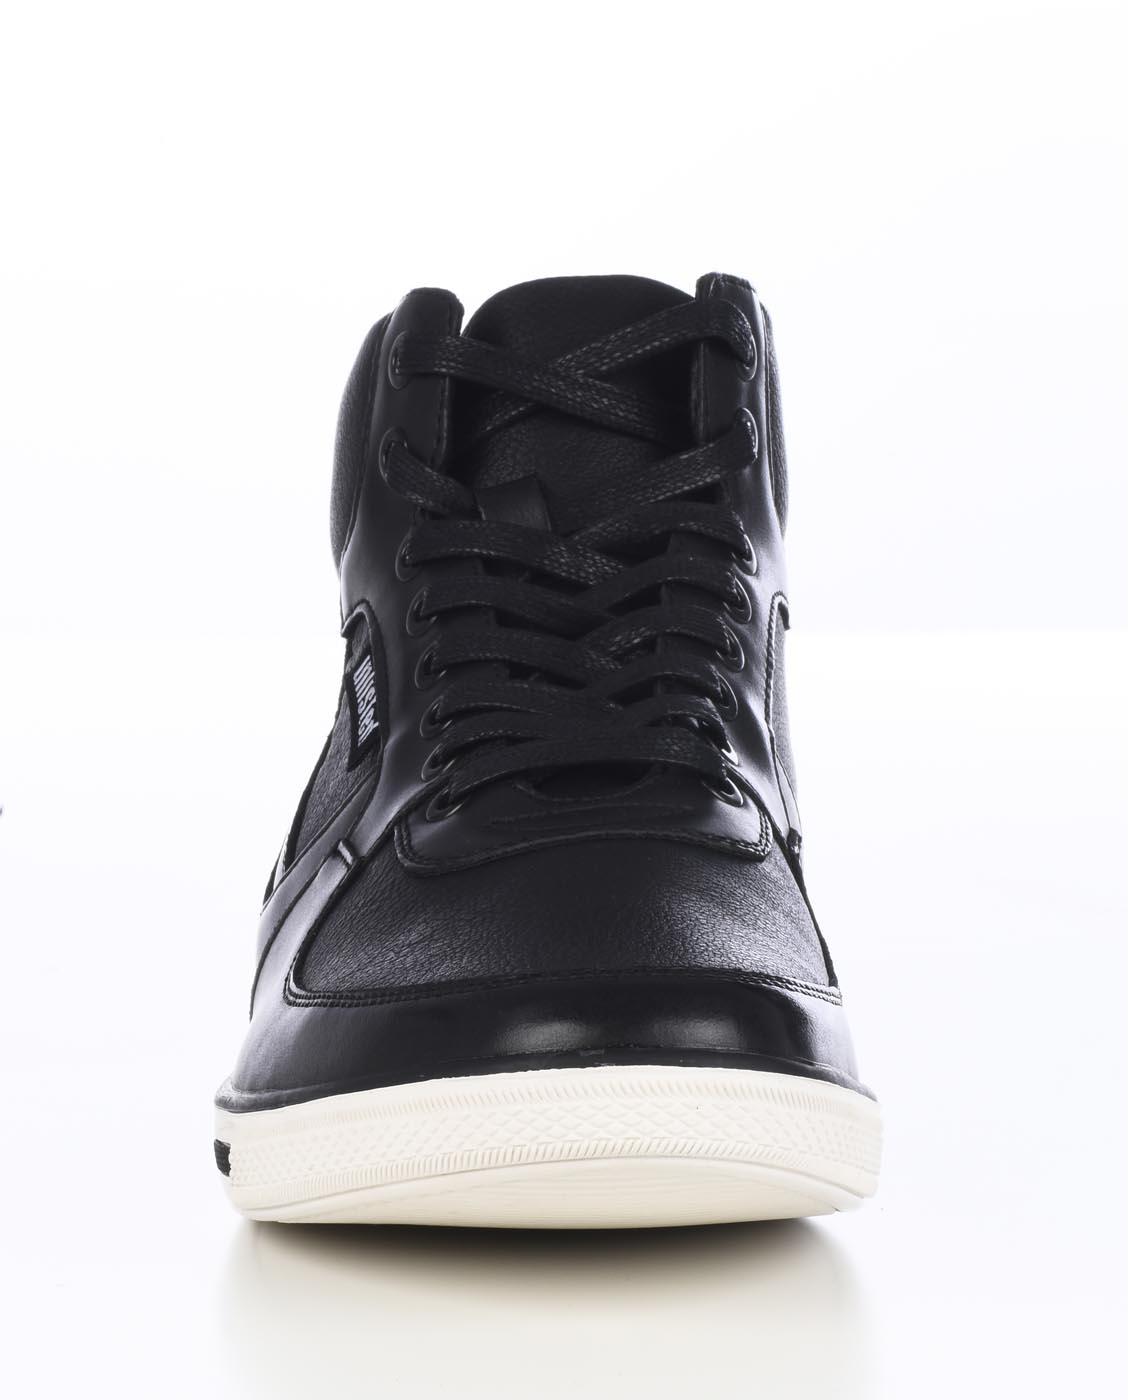 NEW-KENNETH-COLE-UNLISTED-MEN-039-S-CROWN-IT-FASHION-SNEAKER-SHOES-HI-TOP-JMH6SY018 thumbnail 8